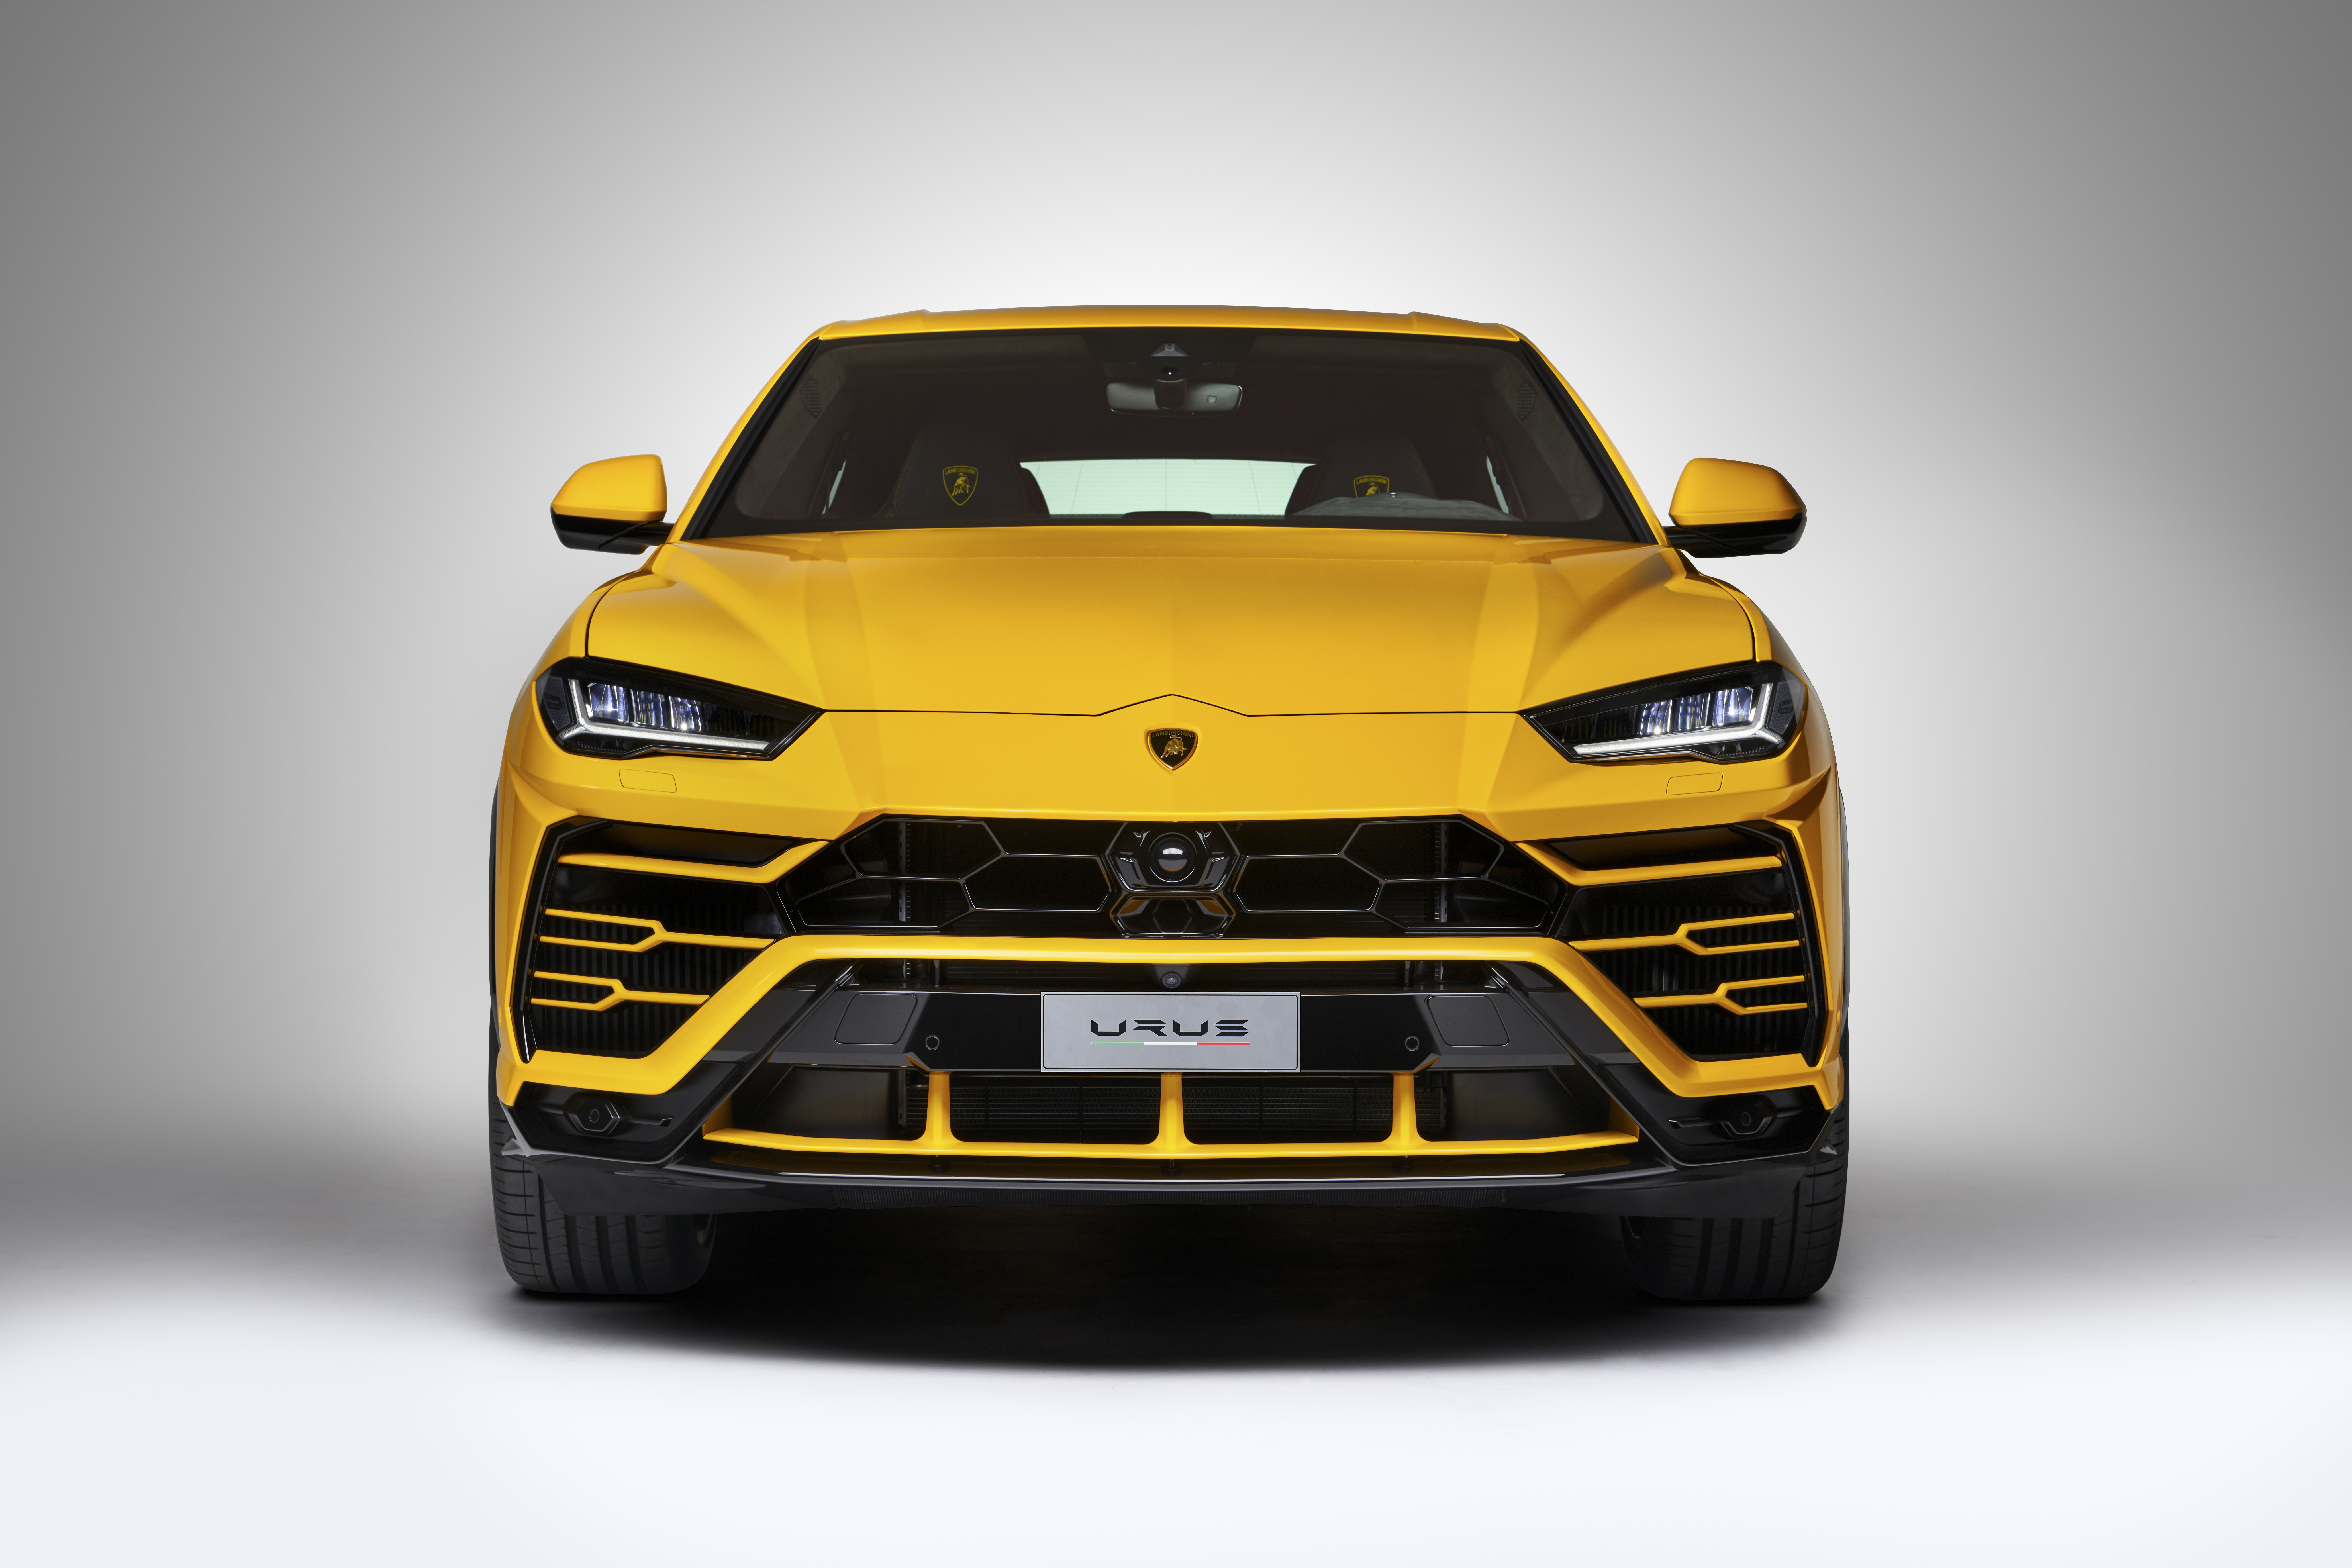 lamborghini urus a game changer?firstly, it coincides with the lamborghini distributorship moving to lsm distributors the same company that also looks after porsche and bentley in sa